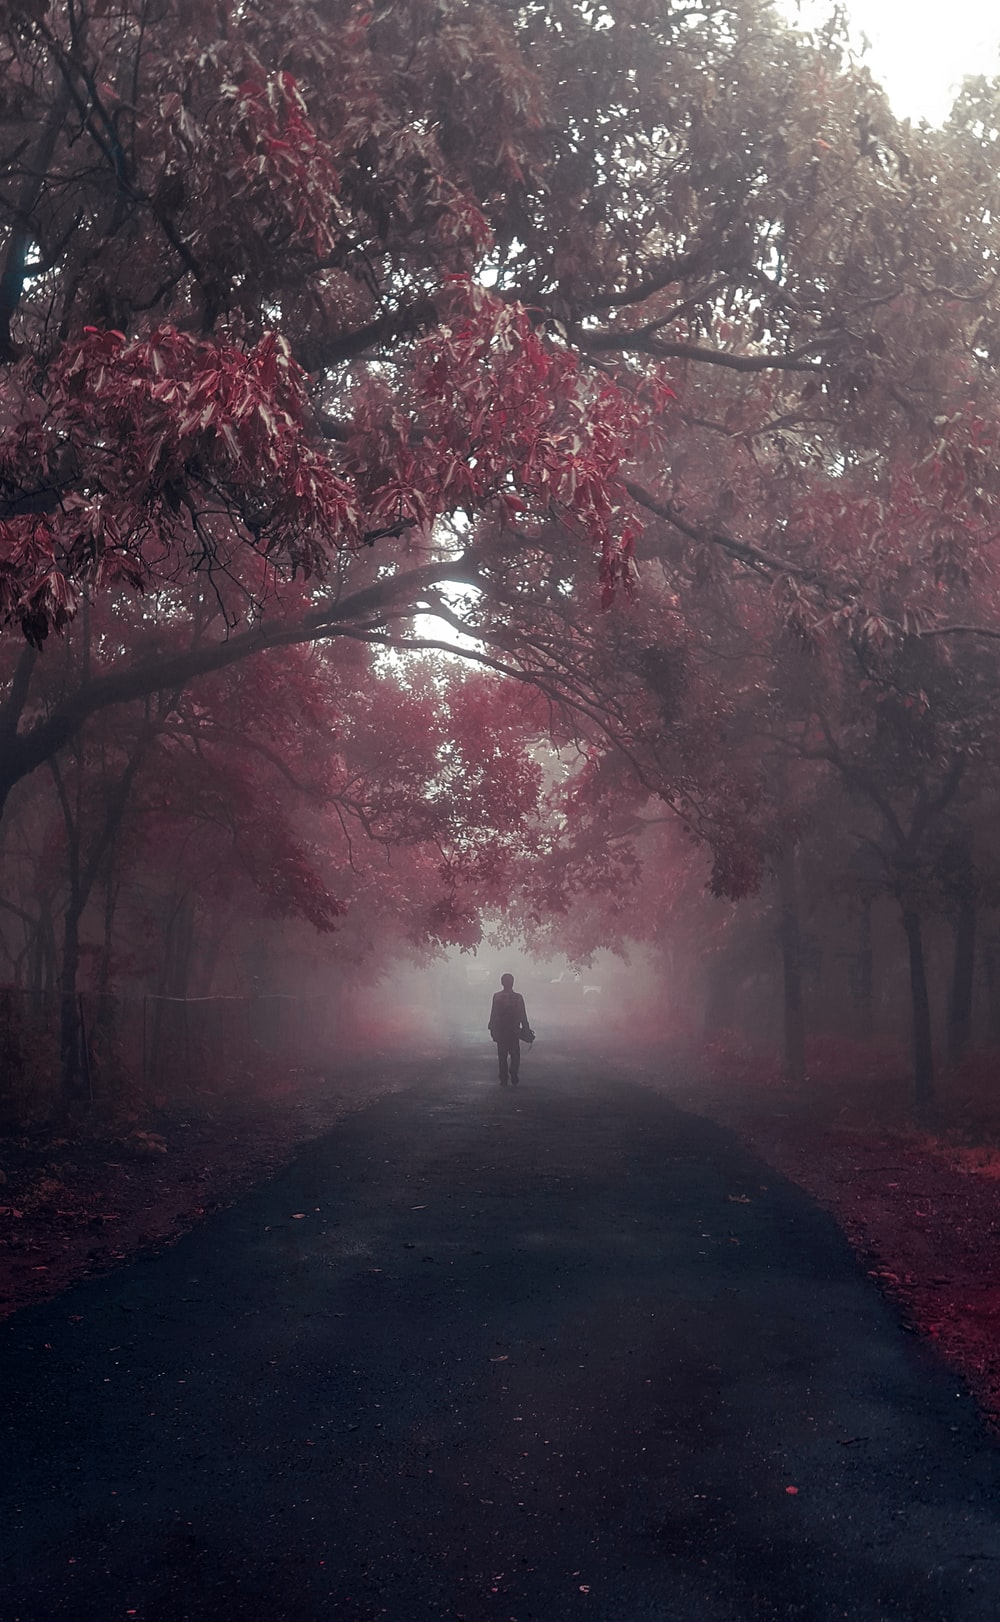 person walking on pathway between trees during daytime